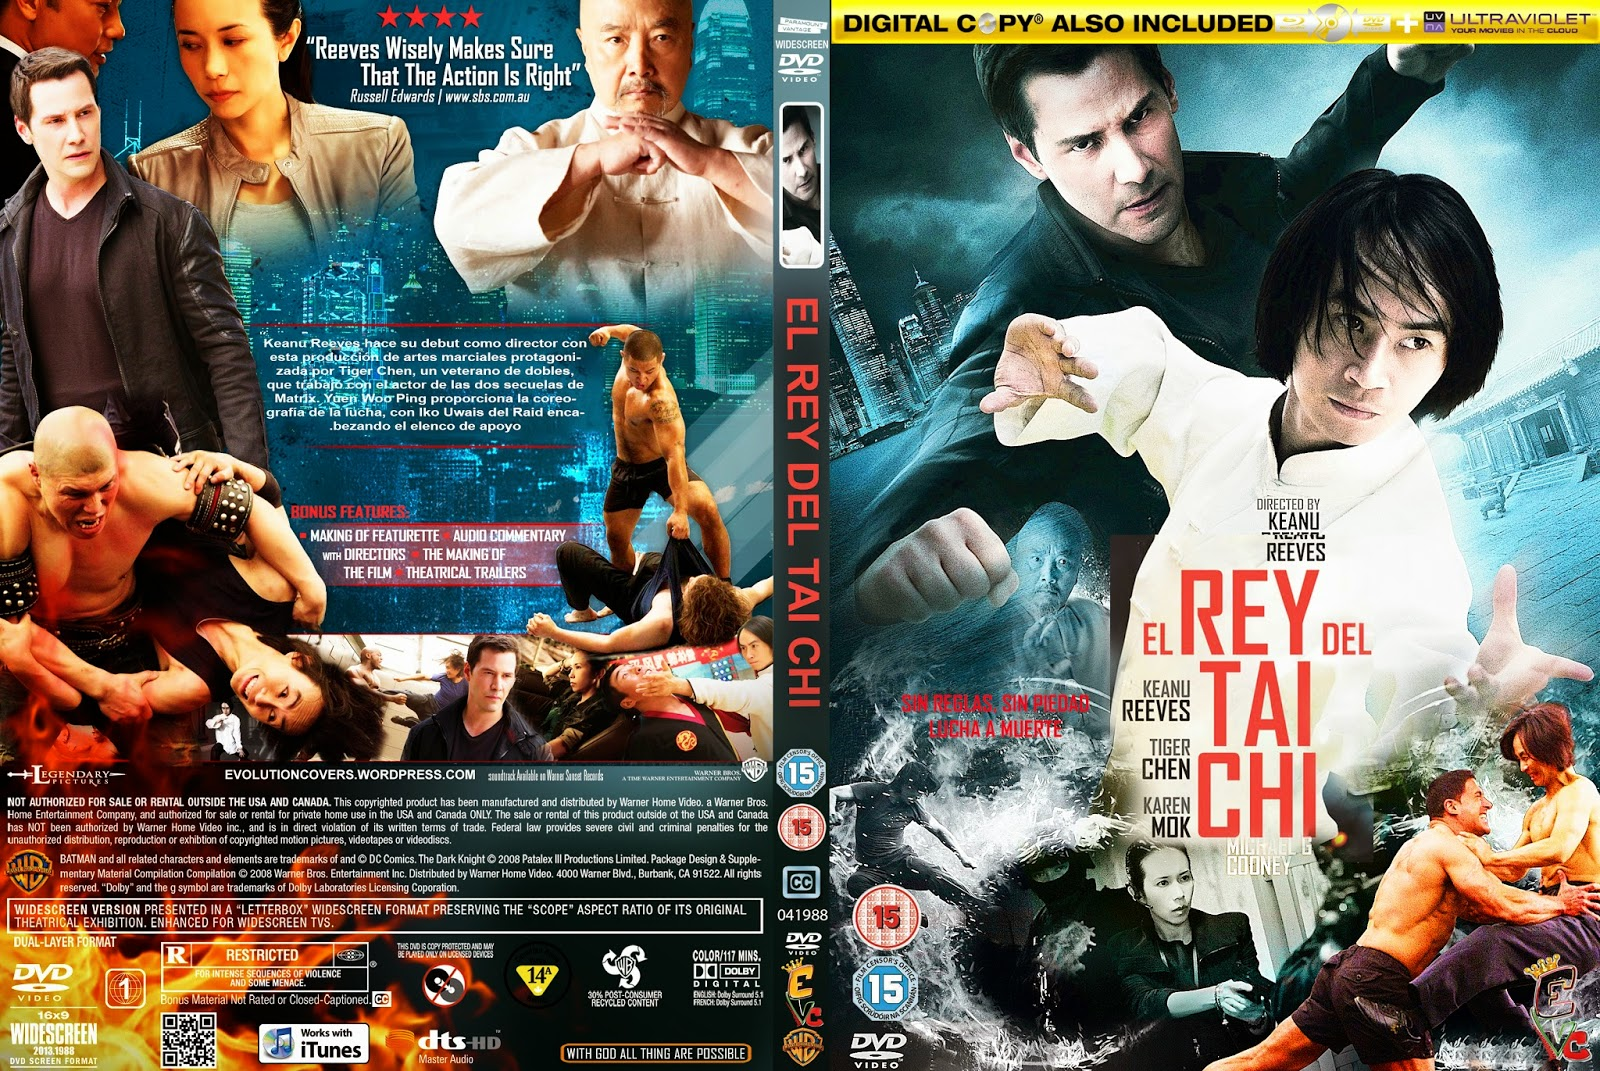 MOVIES WORLD: Man of Tai Chi (EL REY DEL TAI CHI) DVD